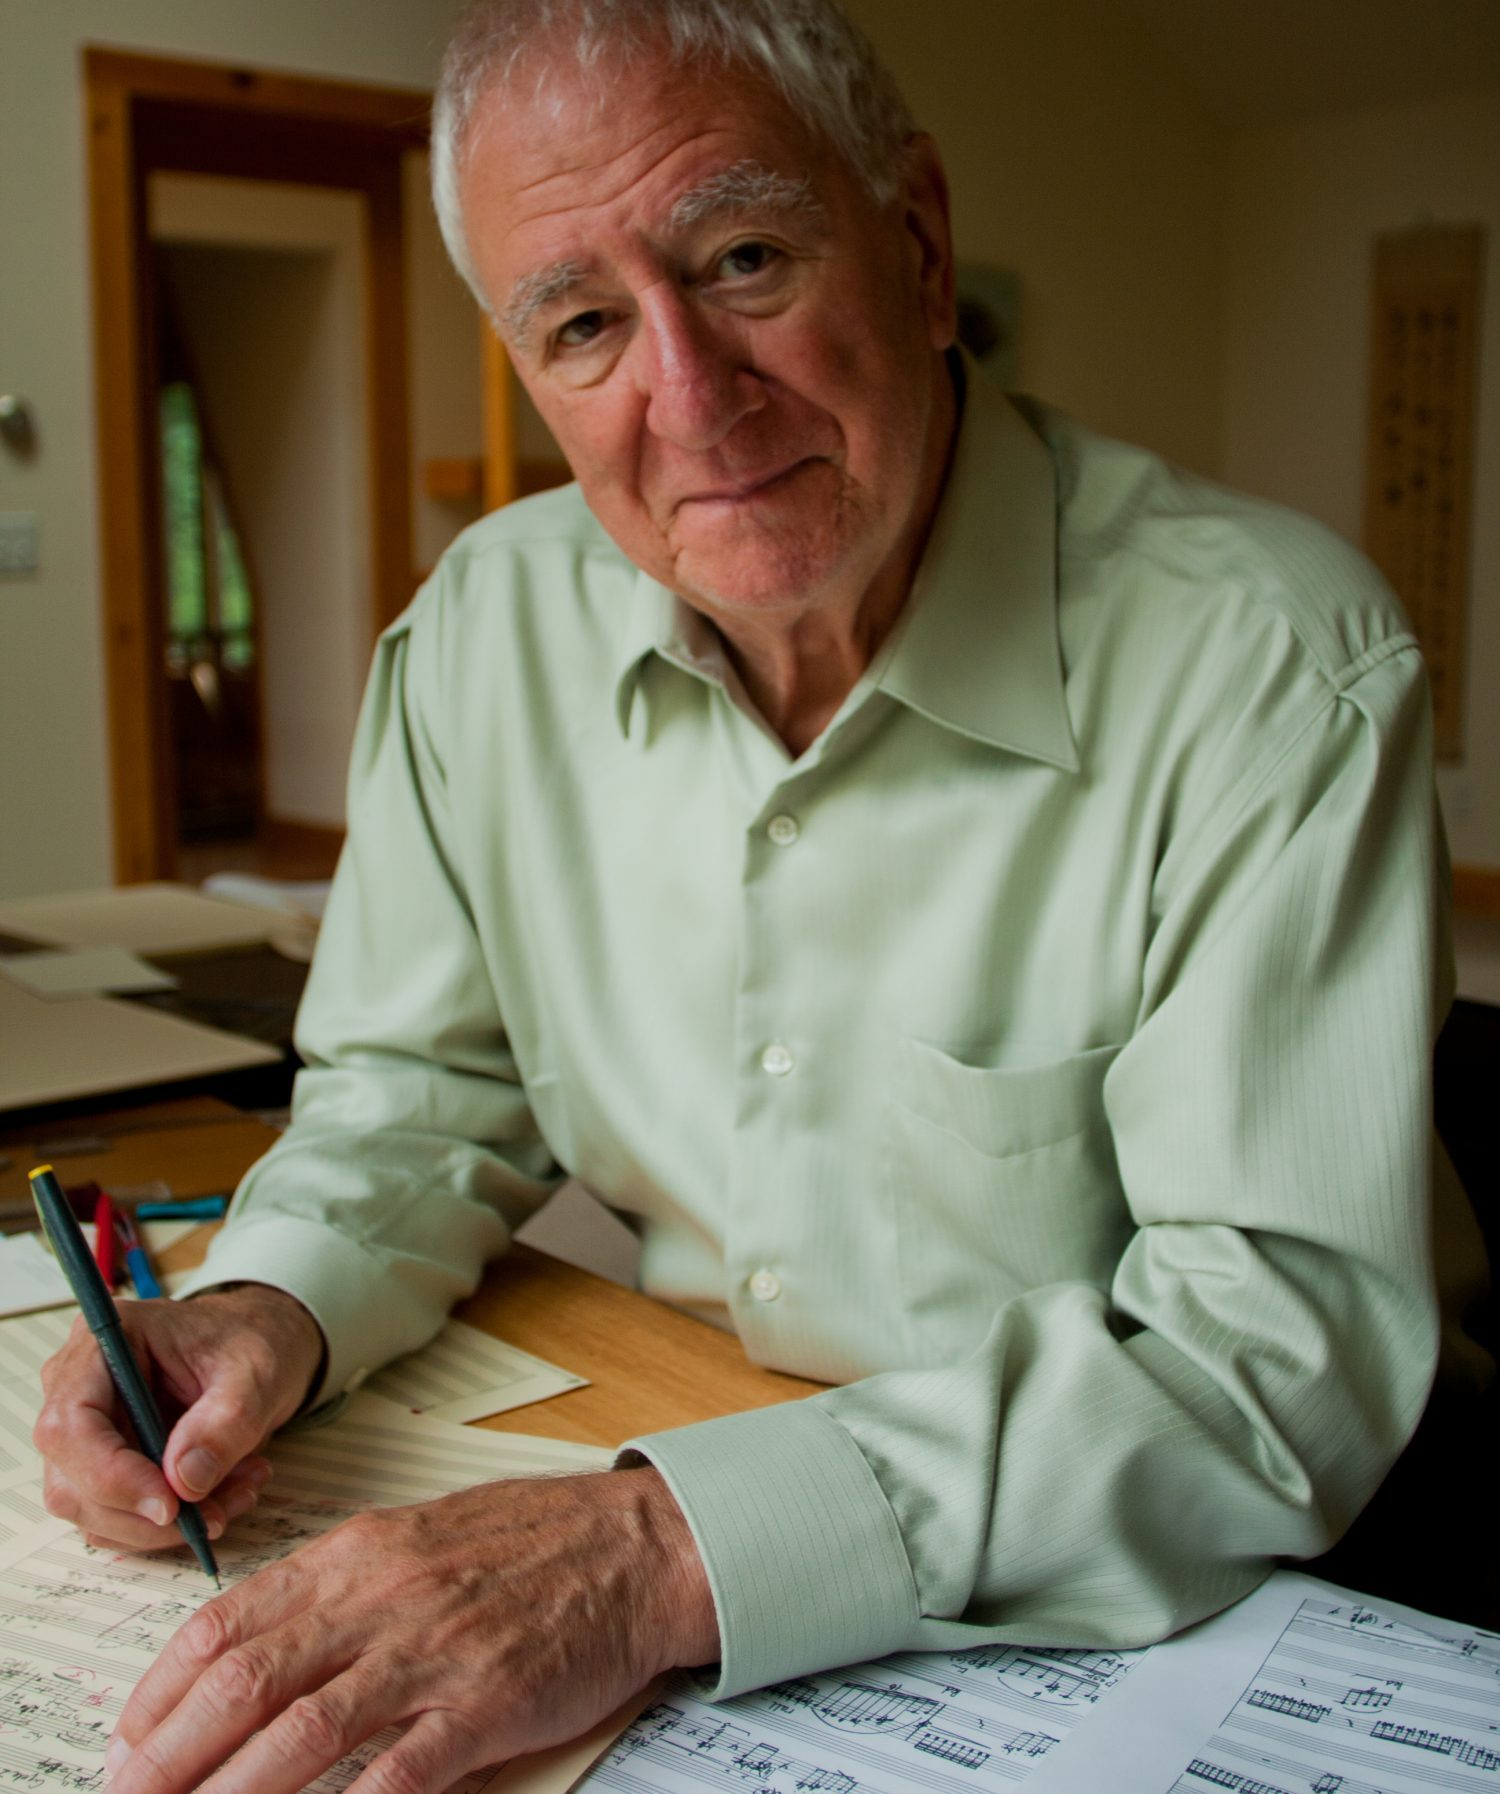 WHAT YOU NEED TO KNOW - Pulitzer Prize-winning composer Bernard Rands is one of Chicago's preeminent composers, and we're honoring him with the world premiere of a new string quartet…as well as nine world premieres by the members of the Chicago Composers' Consortium – all inspired by his work.